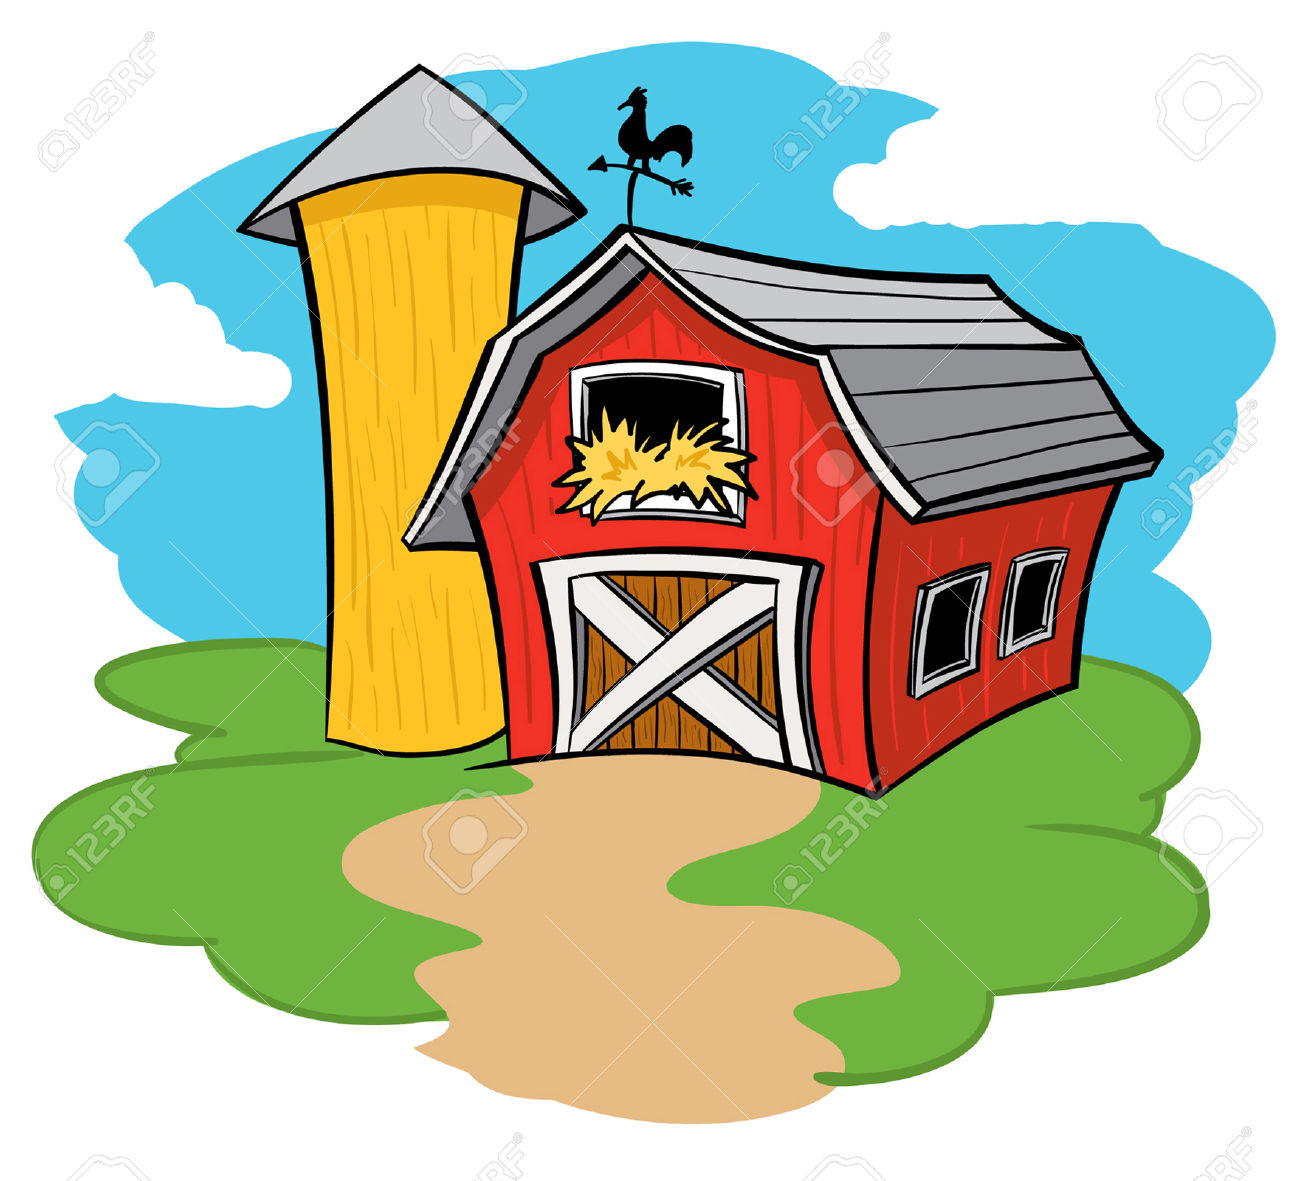 Barn And Silo Royalty Free Cliparts, Vectors, And Stock.